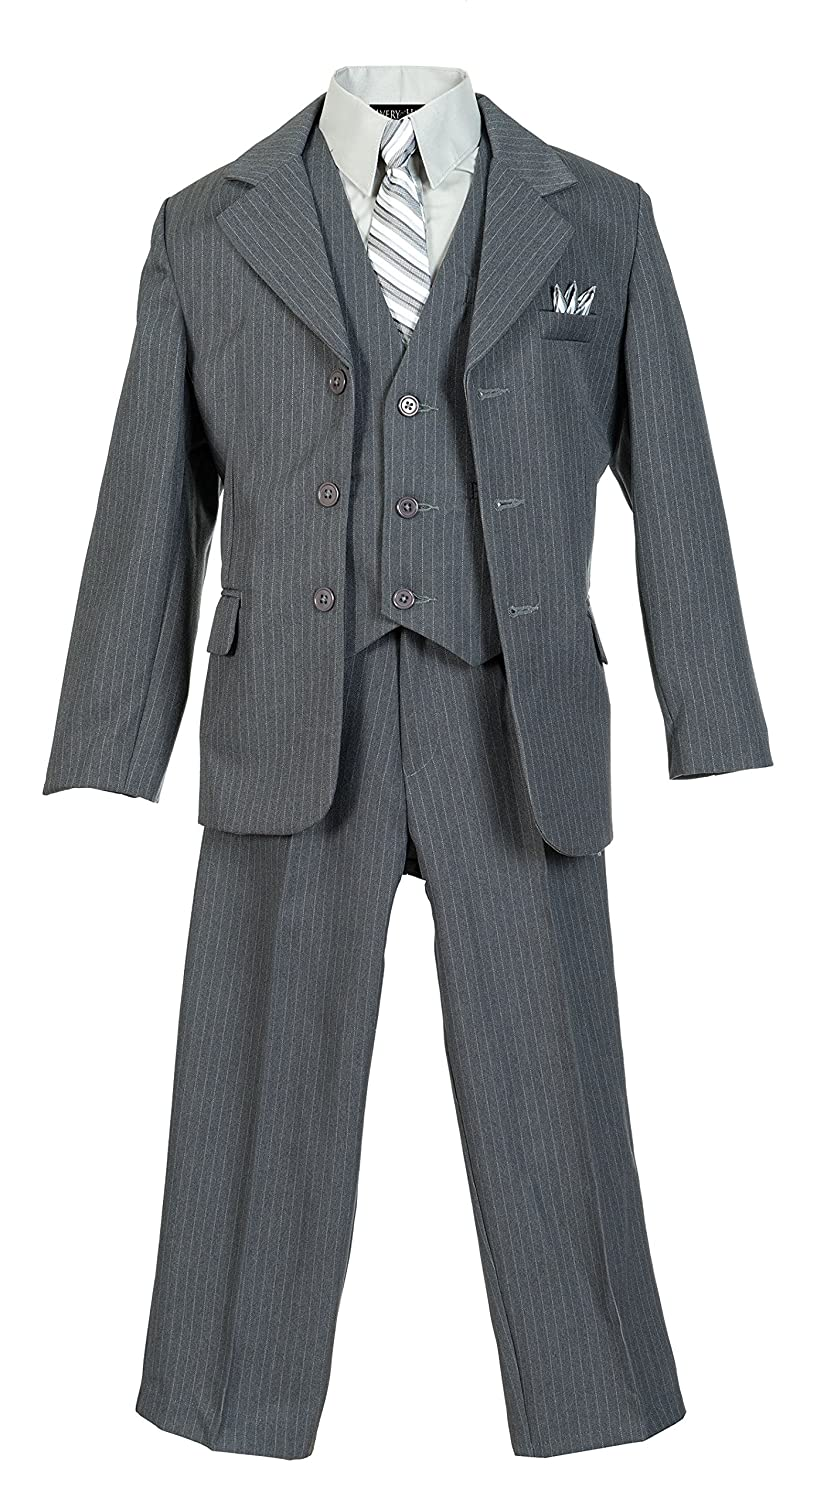 1920s Children Fashions: Girls, Boys, Baby Costumes Boys Pinstripe Suit Set with Matching Tie Size 2T-20 $44.99 AT vintagedancer.com